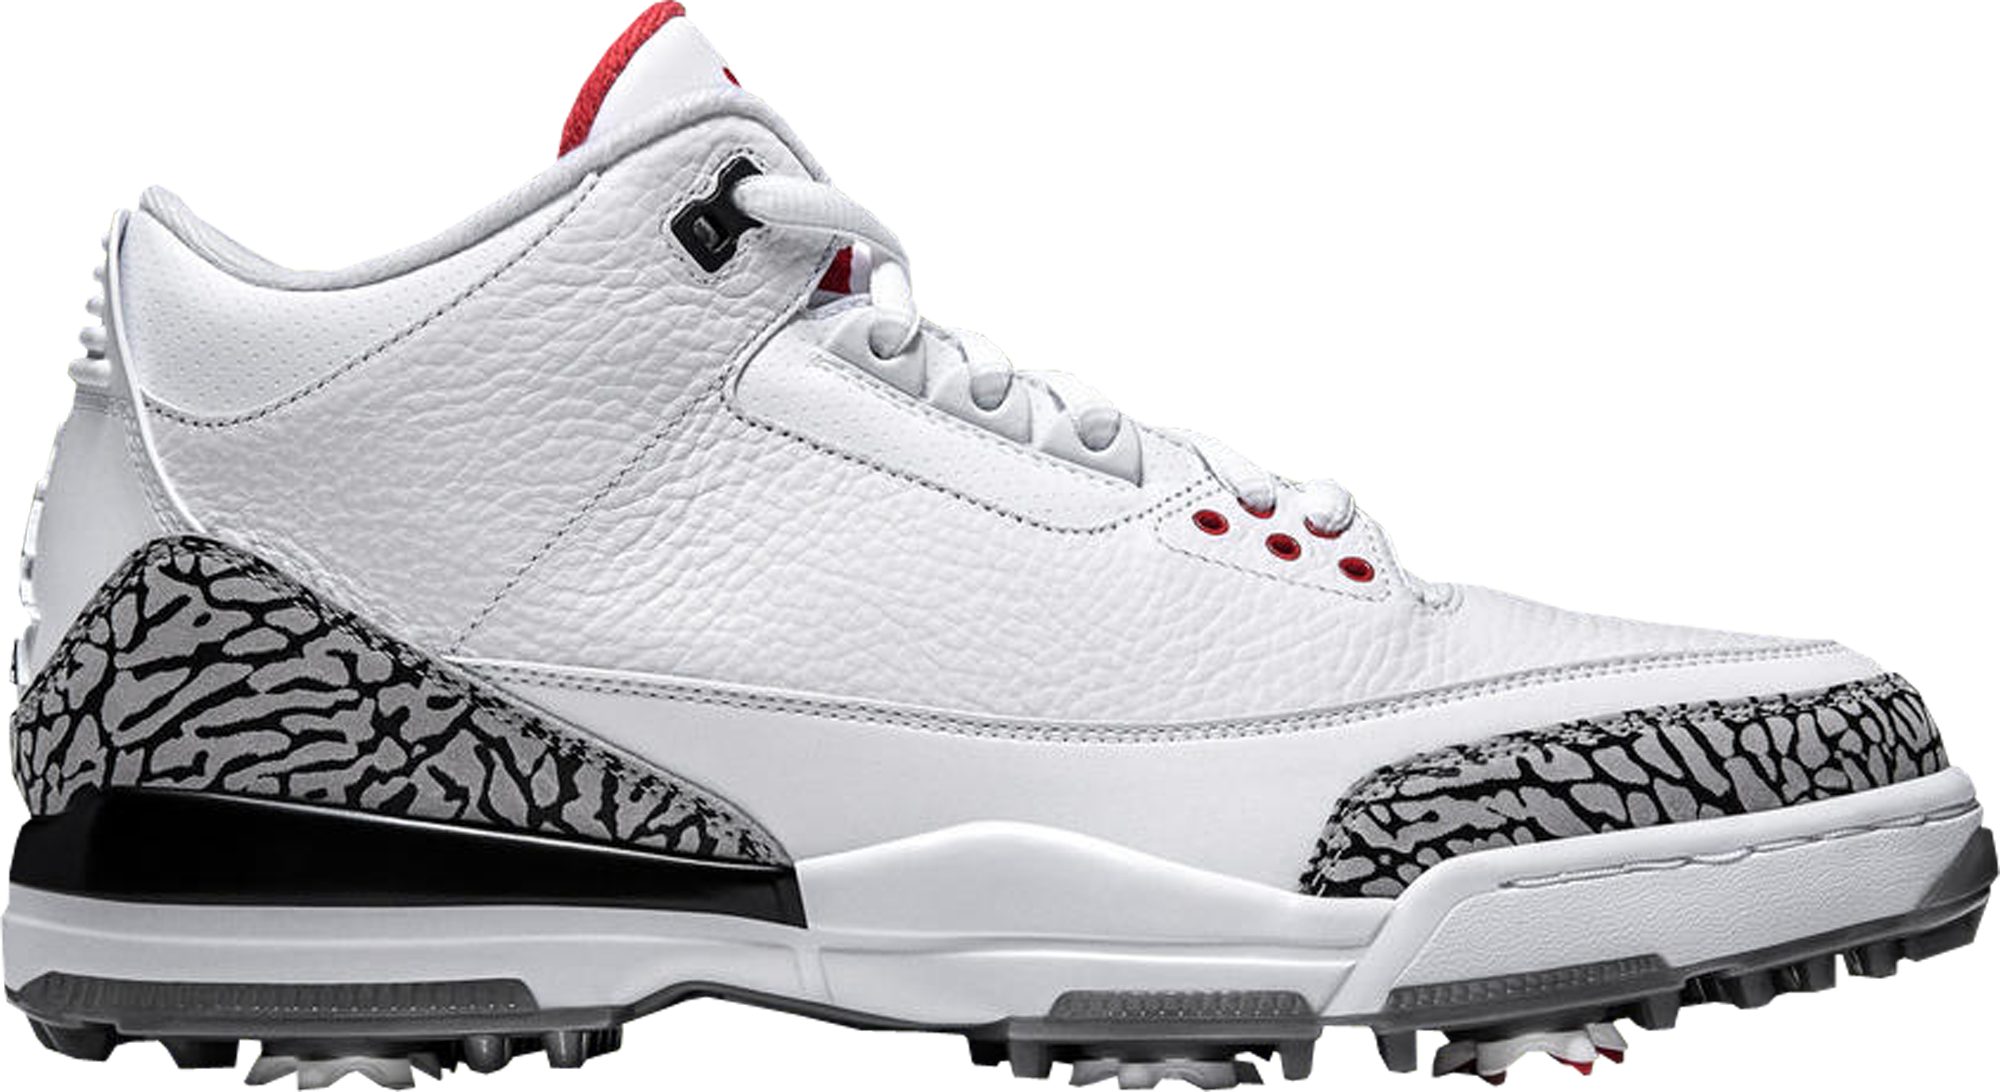 NO BUY SELL TRADE POSTS) Air Jordan GOLF footwear - Jordan Trainer ... cbcfd52ed